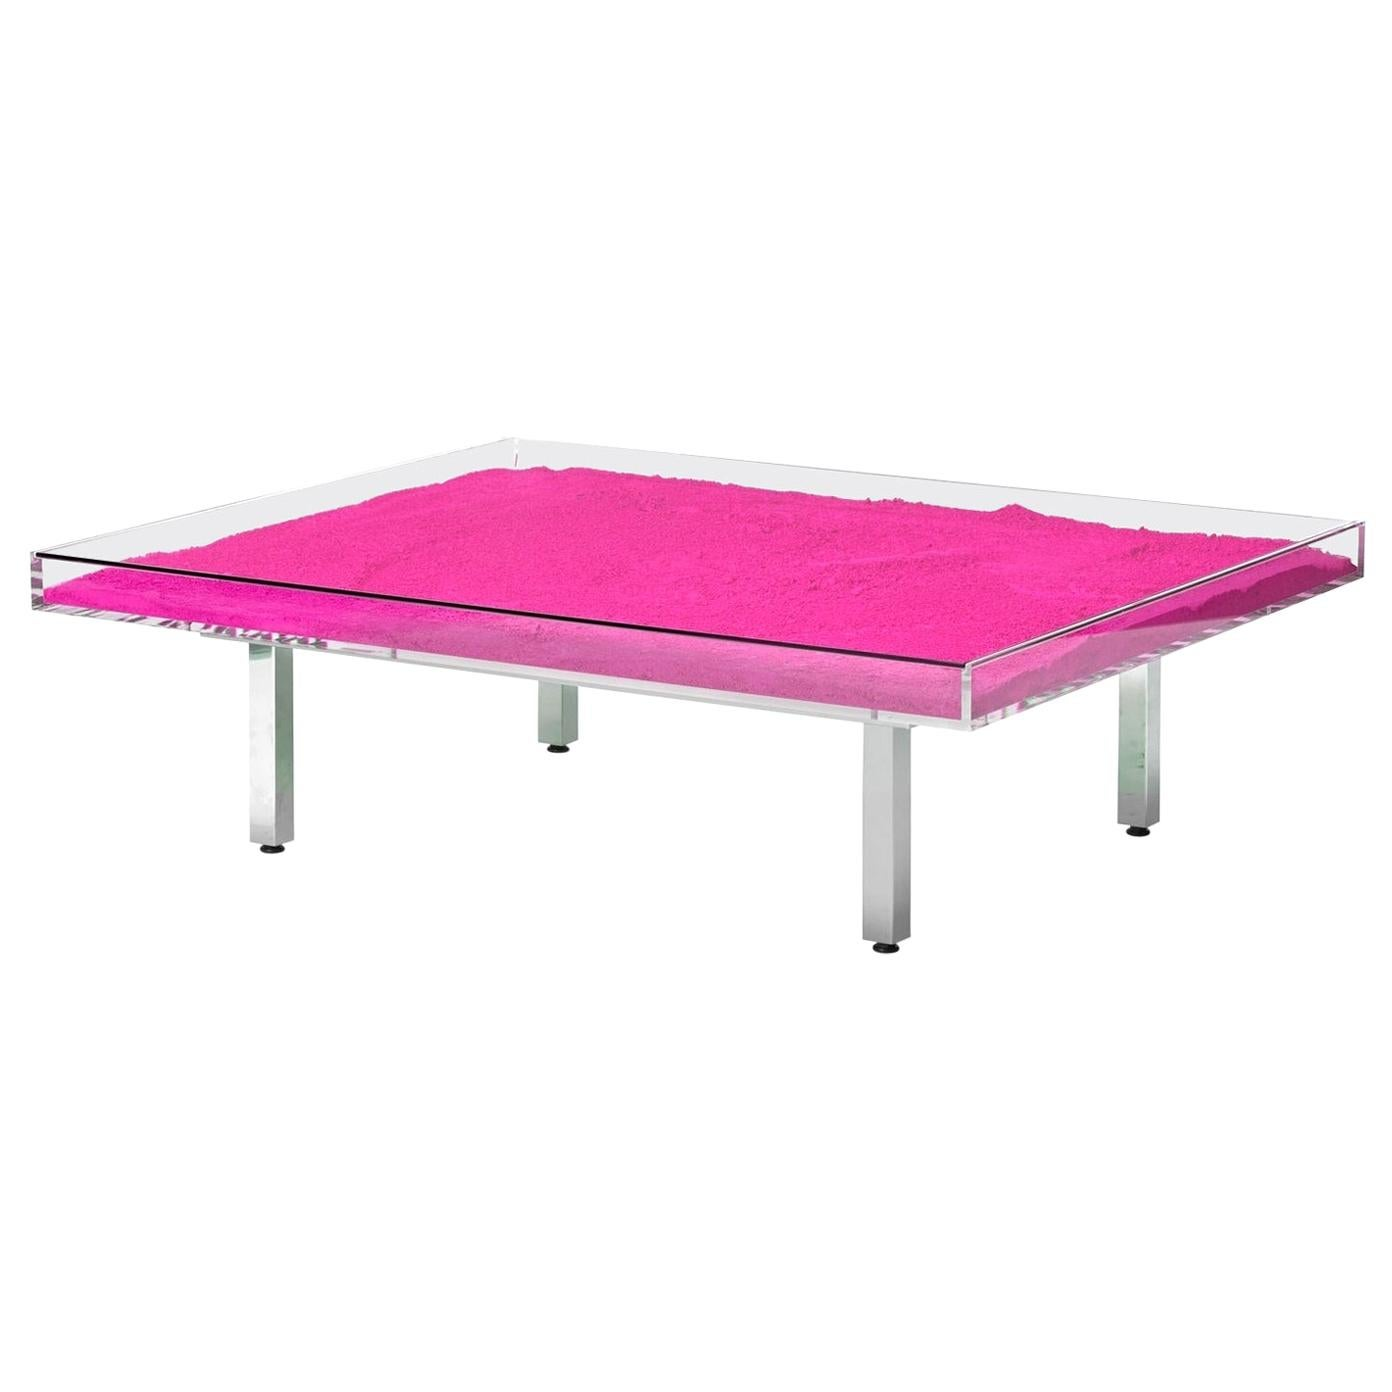 """In Stock in Los Angeles, Yves Klein Pink """"Monopink"""" Glass Table, Made in France"""